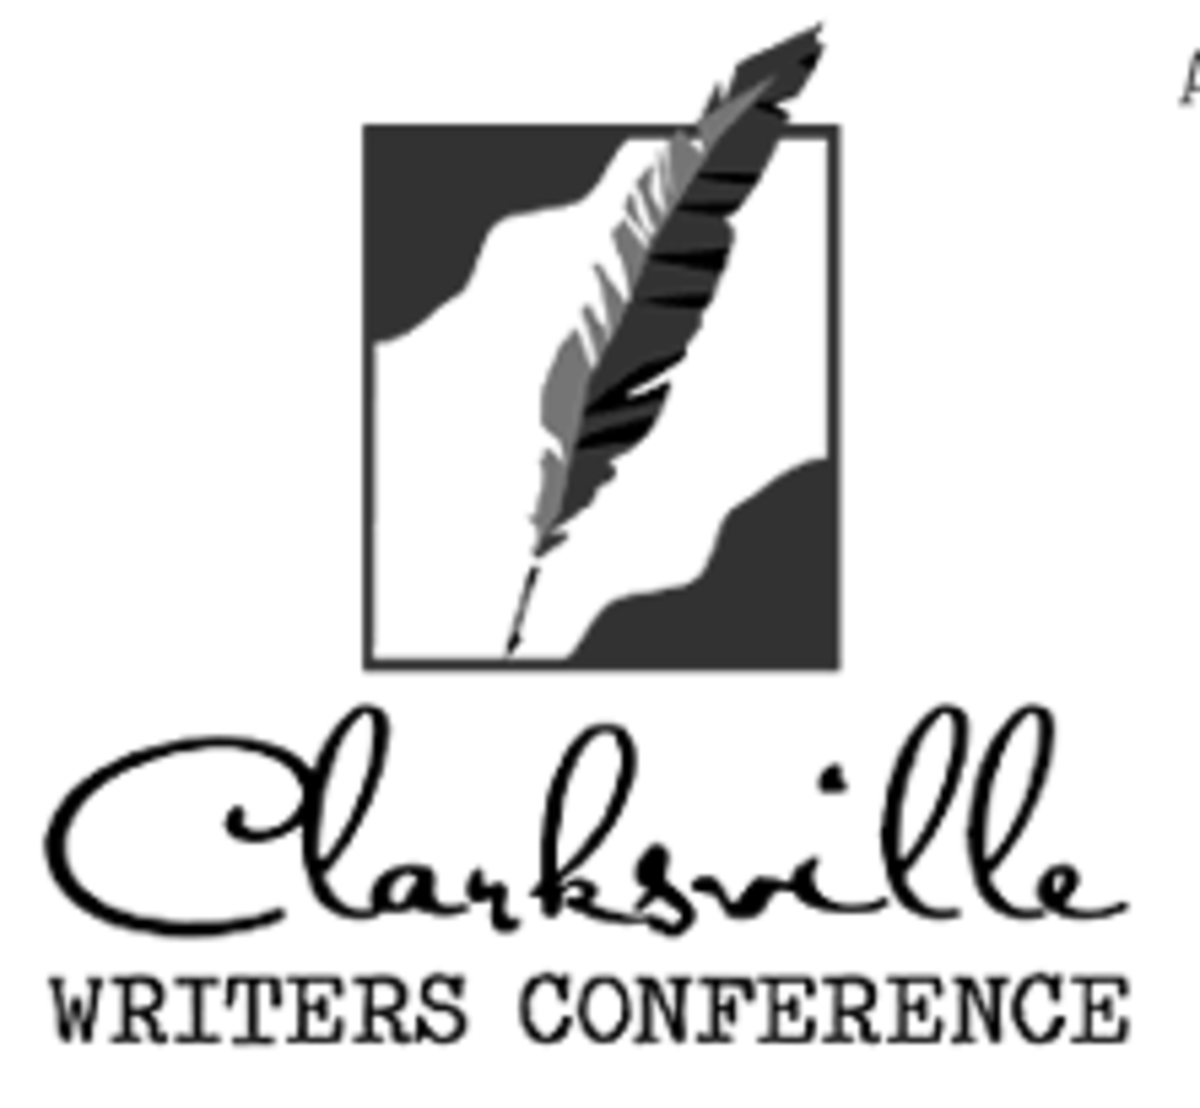 clarksville-writers-conference